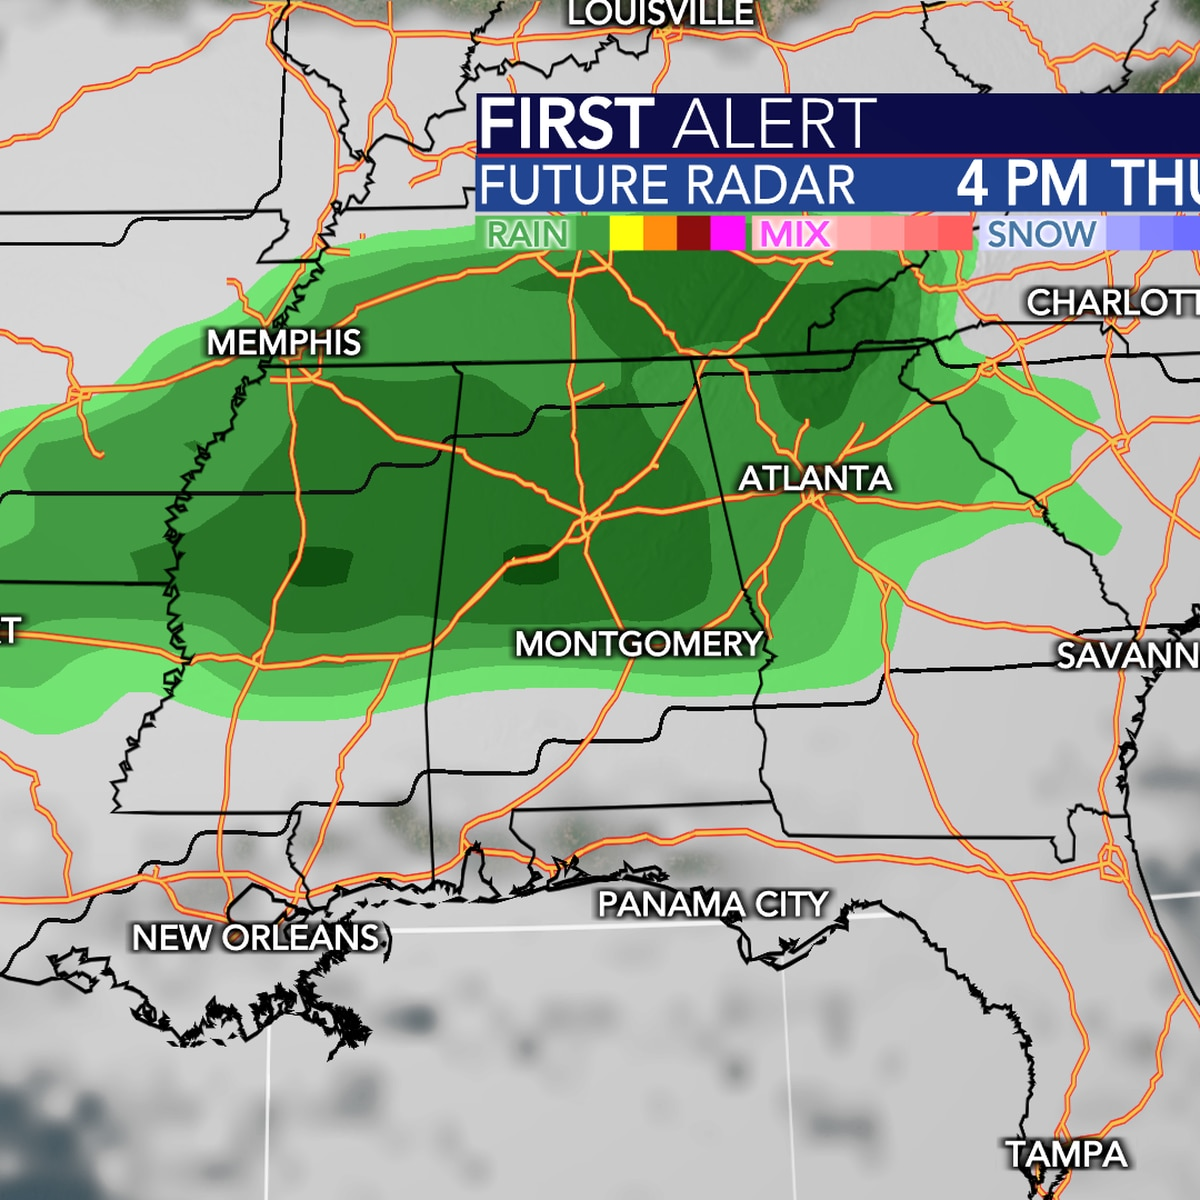 Get ready for the 60s and a good shot of rainfall